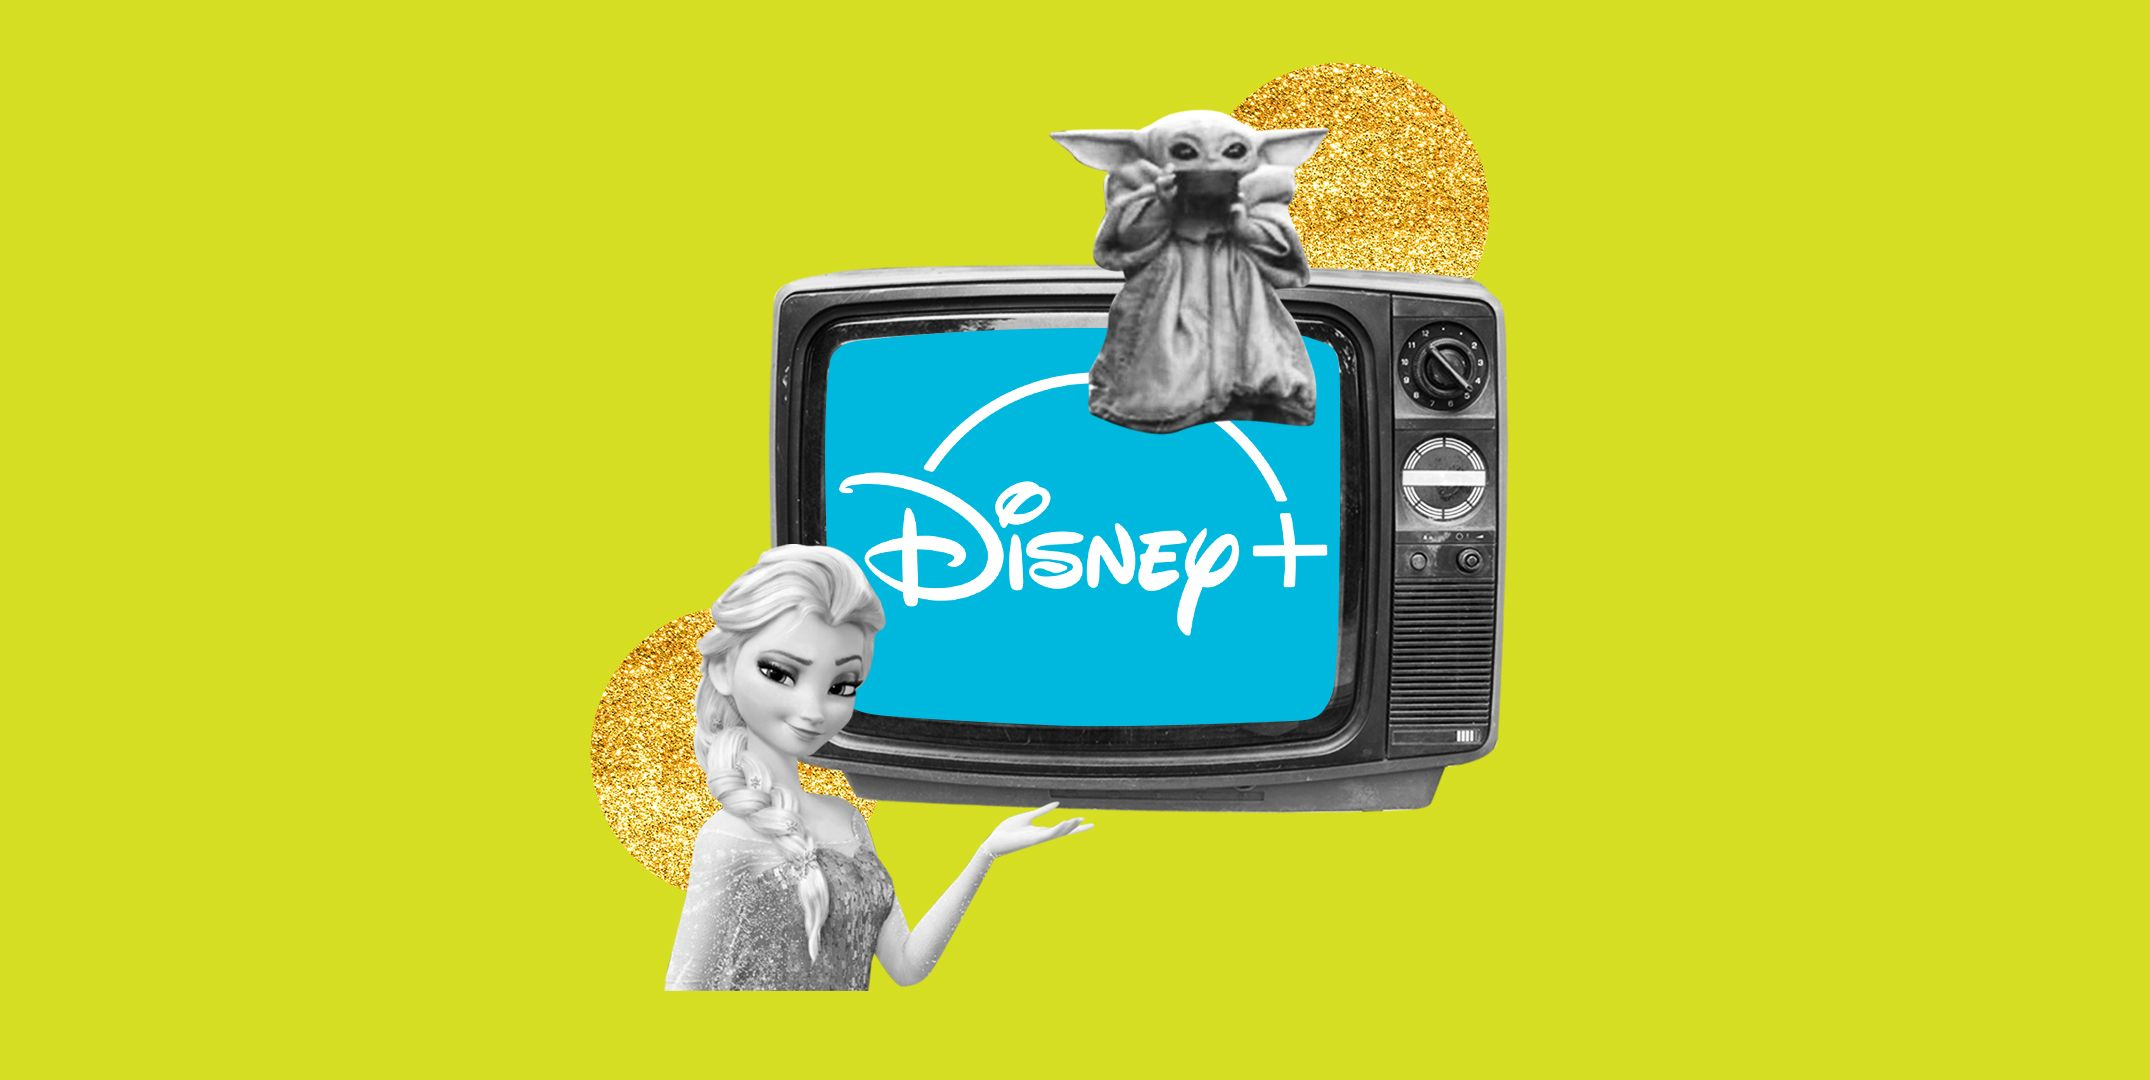 What's New On Disney+? Here's Everything The Streaming Service Is Adding in January